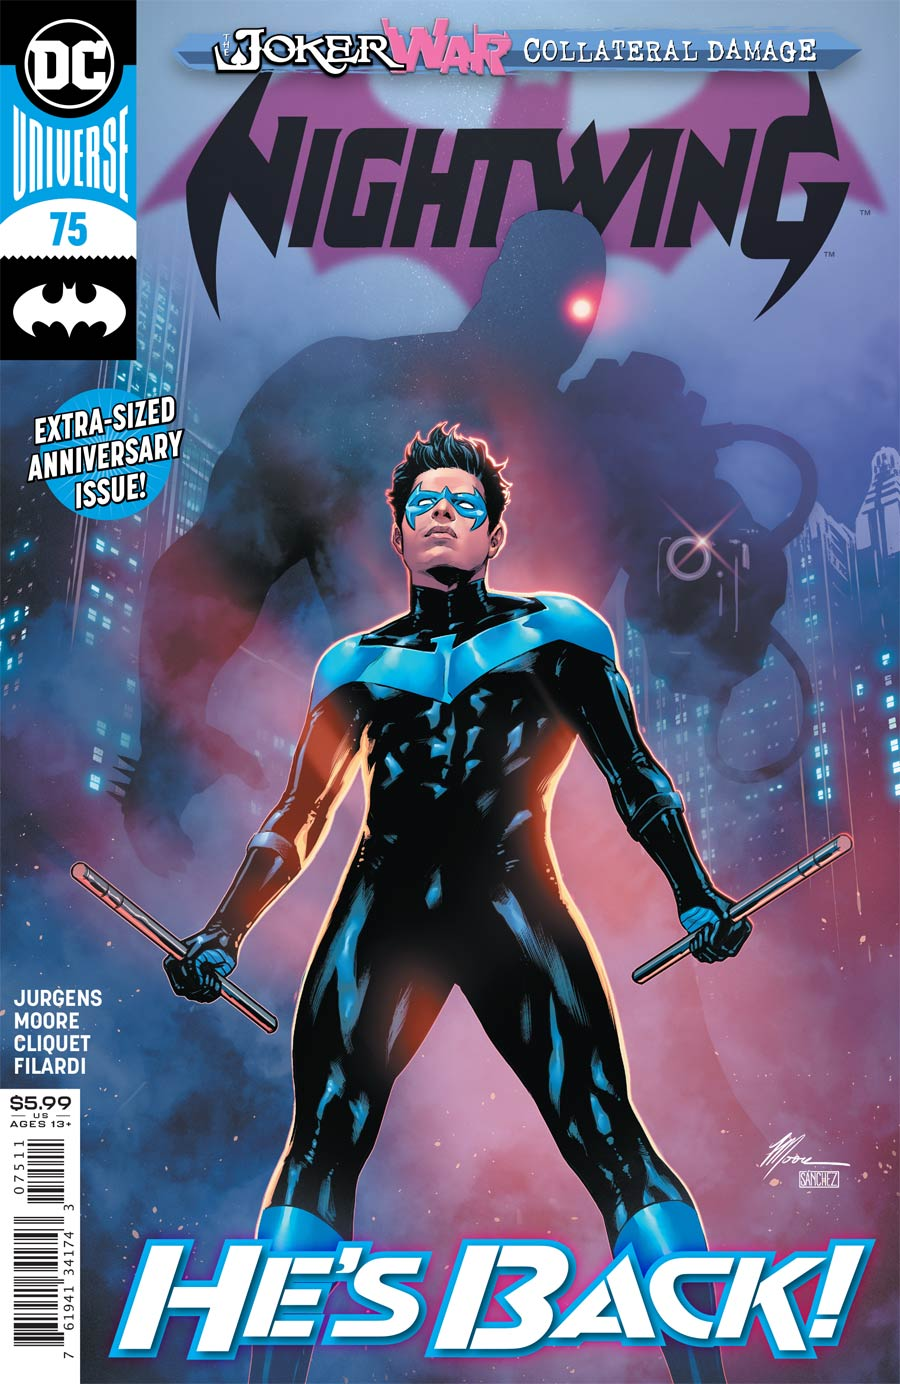 Nightwing Vol 4 #75 Cover A Regular Travis Moore Cover (Joker War Fallout Tie-In)